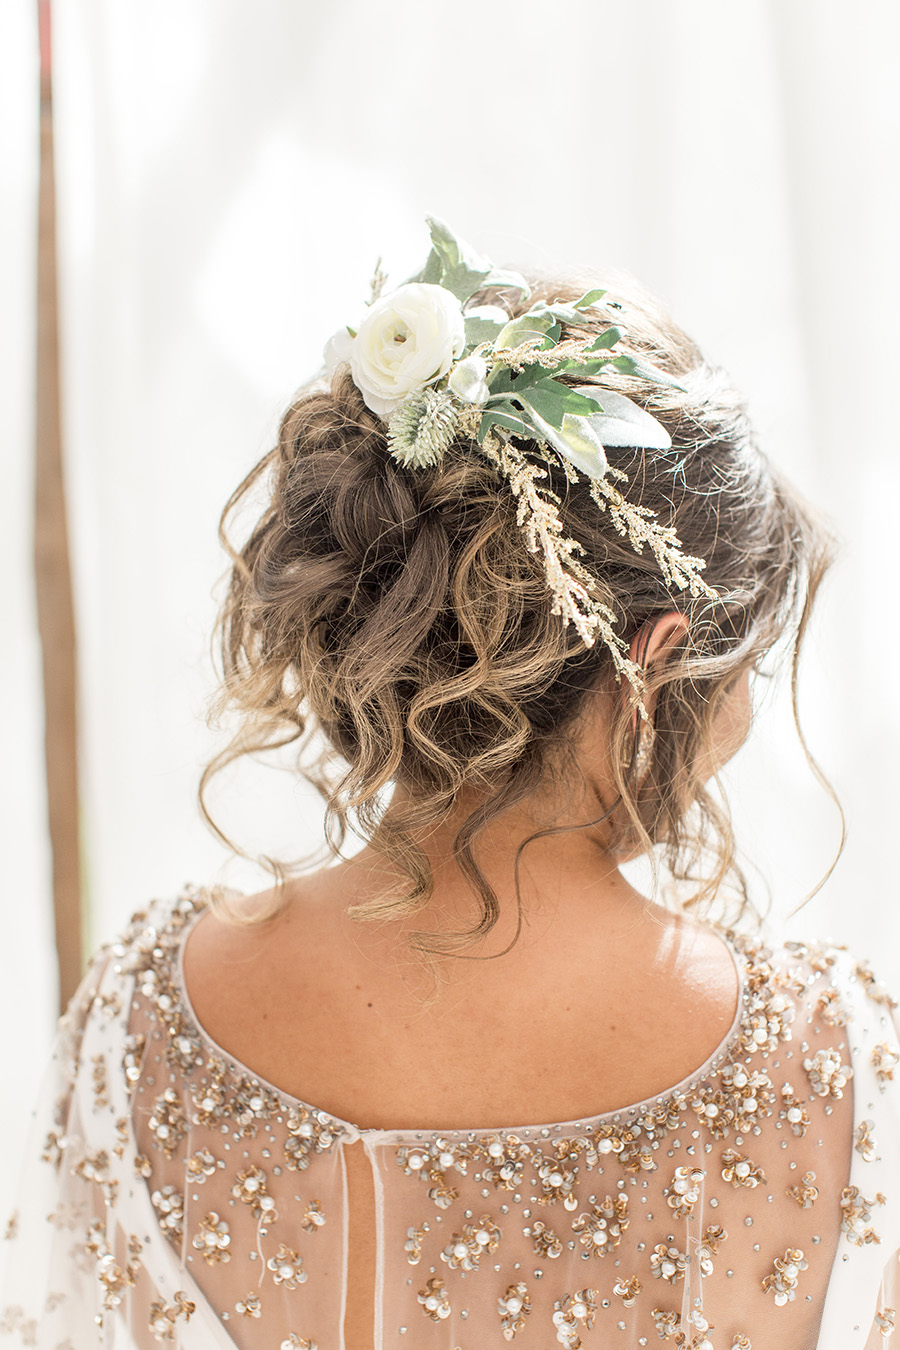 Messy wedding updo with floral hairpiece